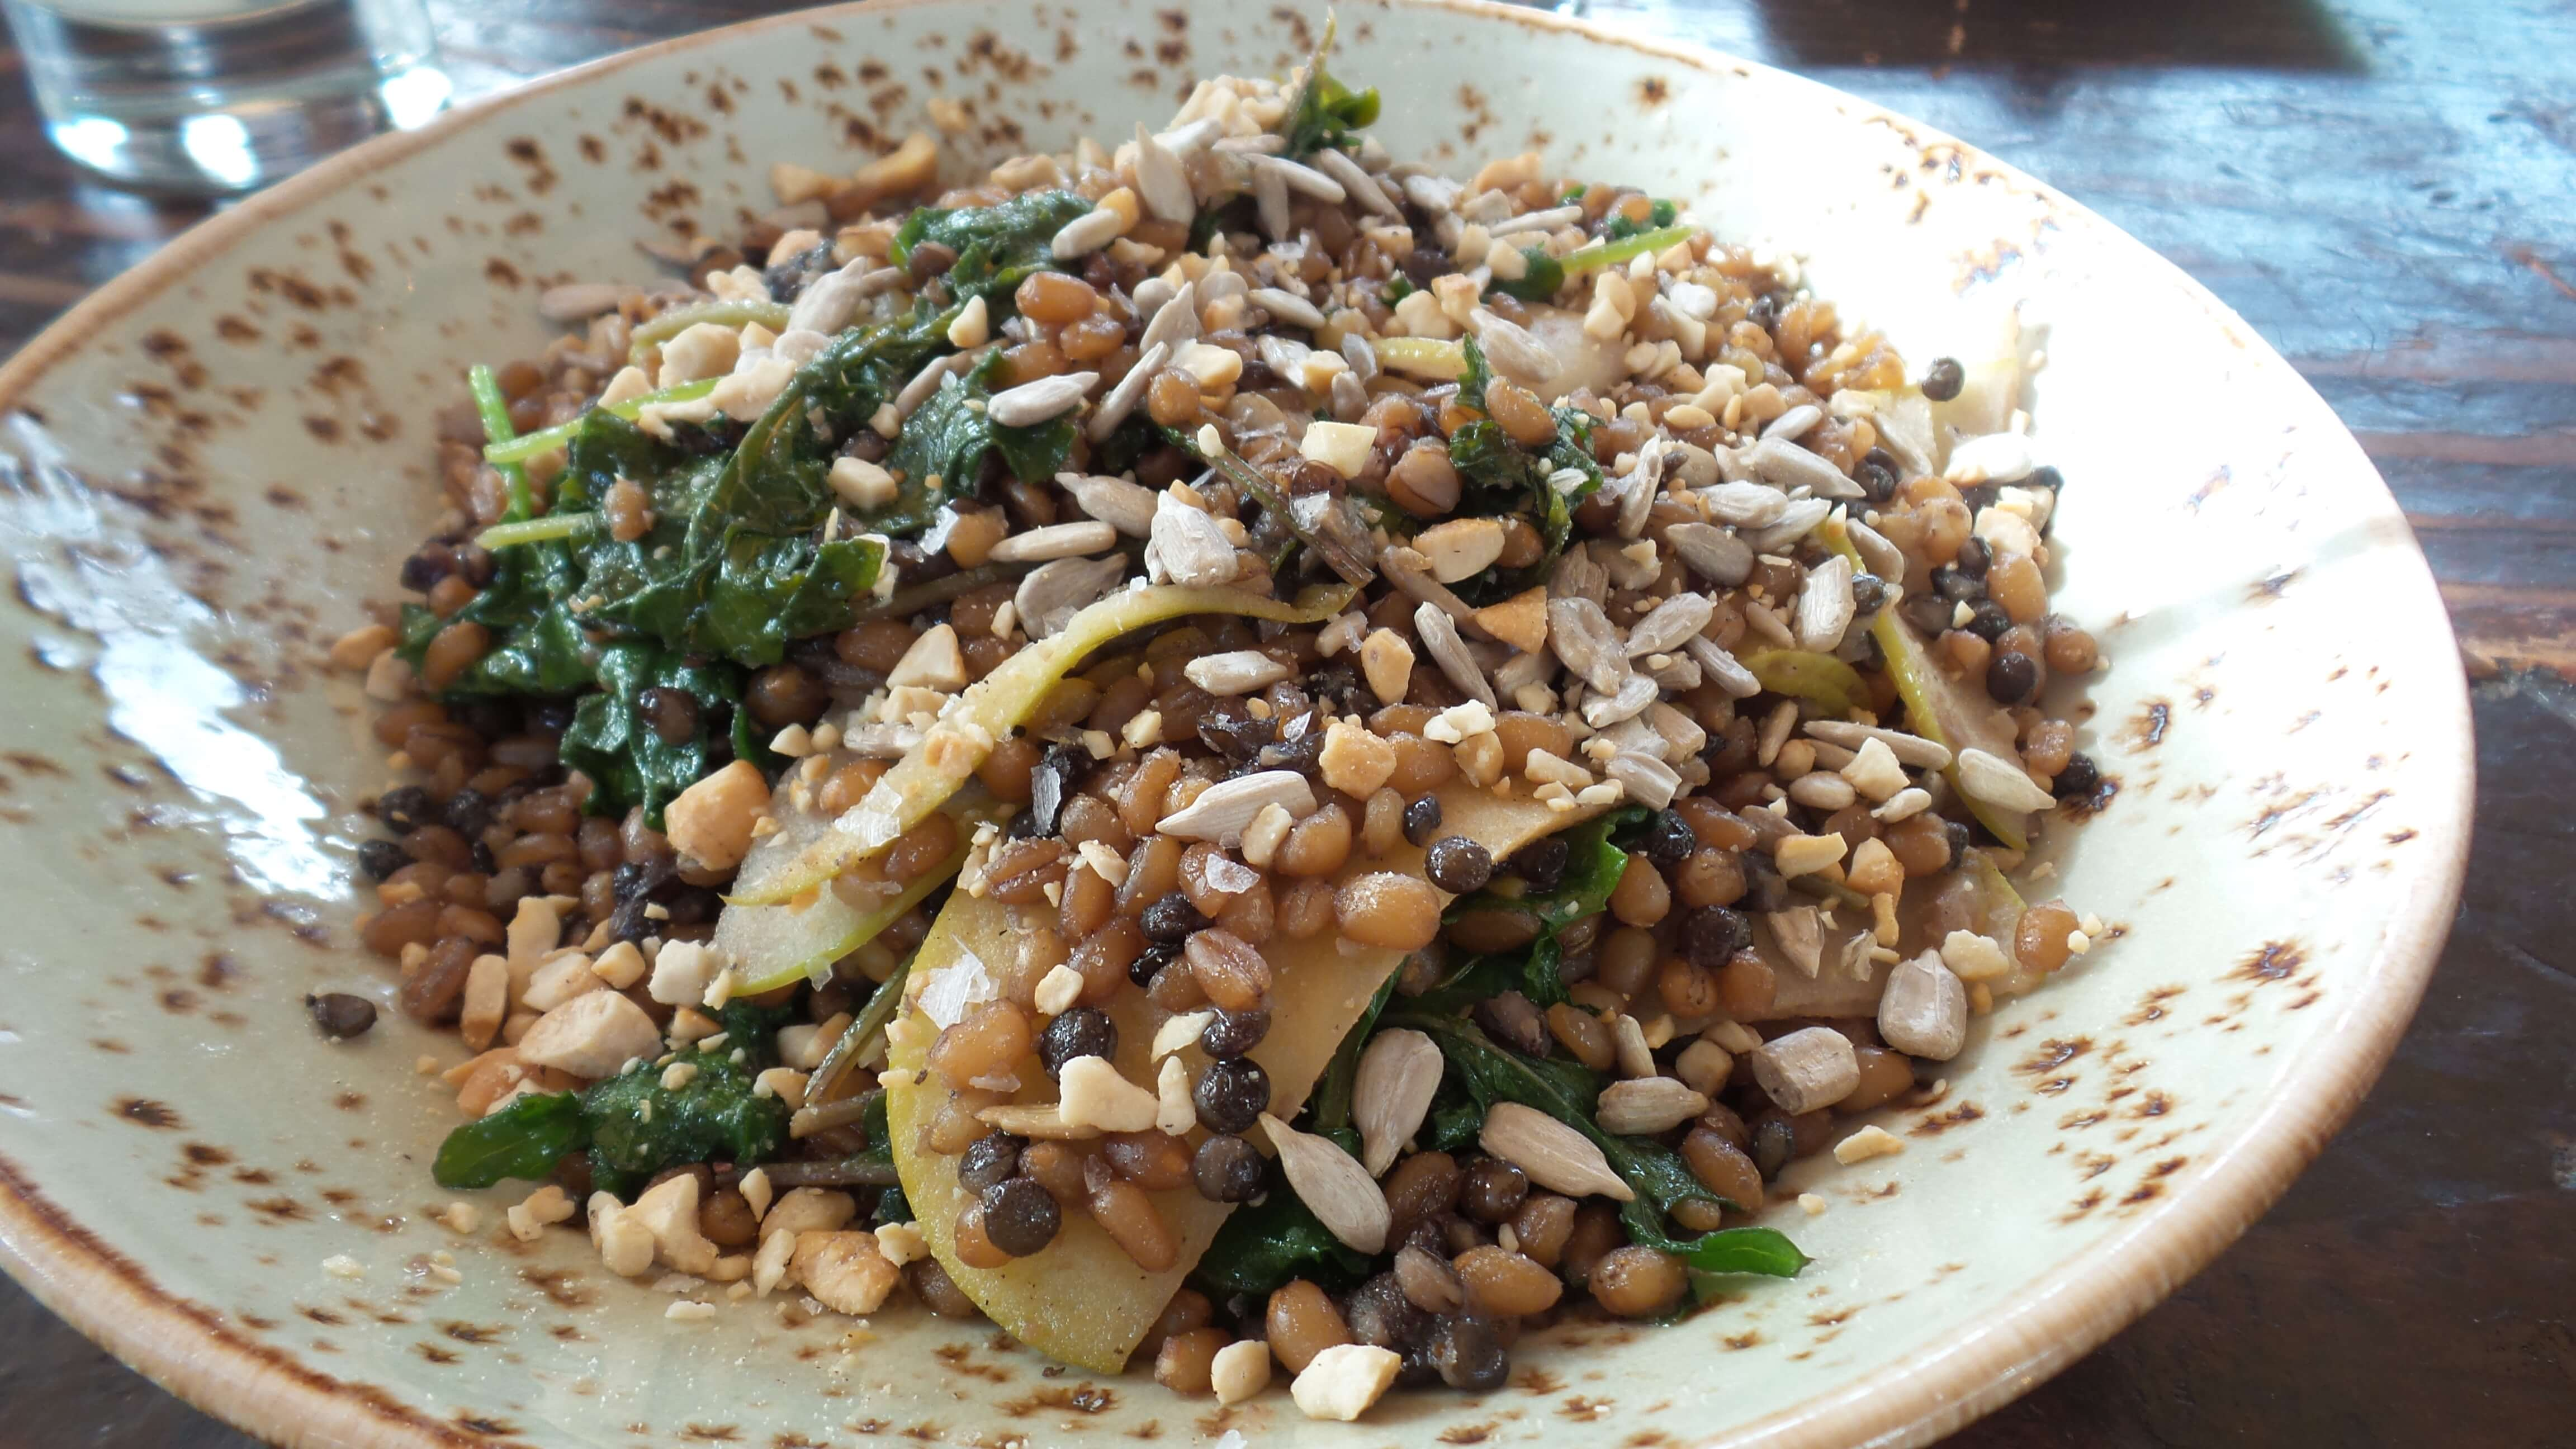 Warm Wheatberries & Lentils, apples, toasted sunflower seeds & cashews